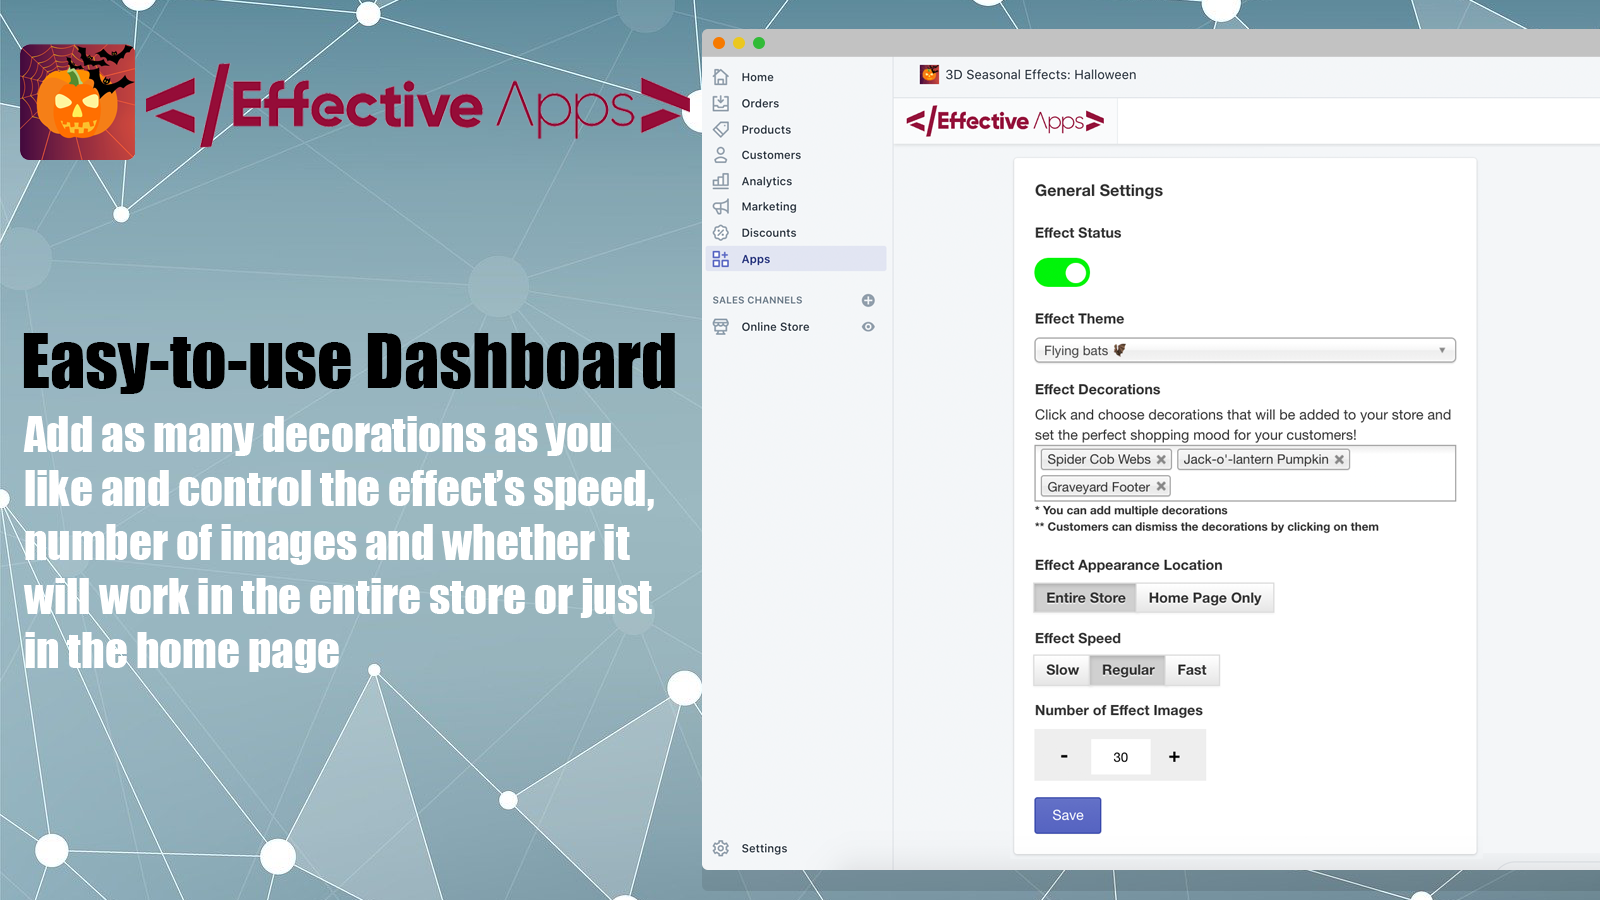 The dashboard of the app